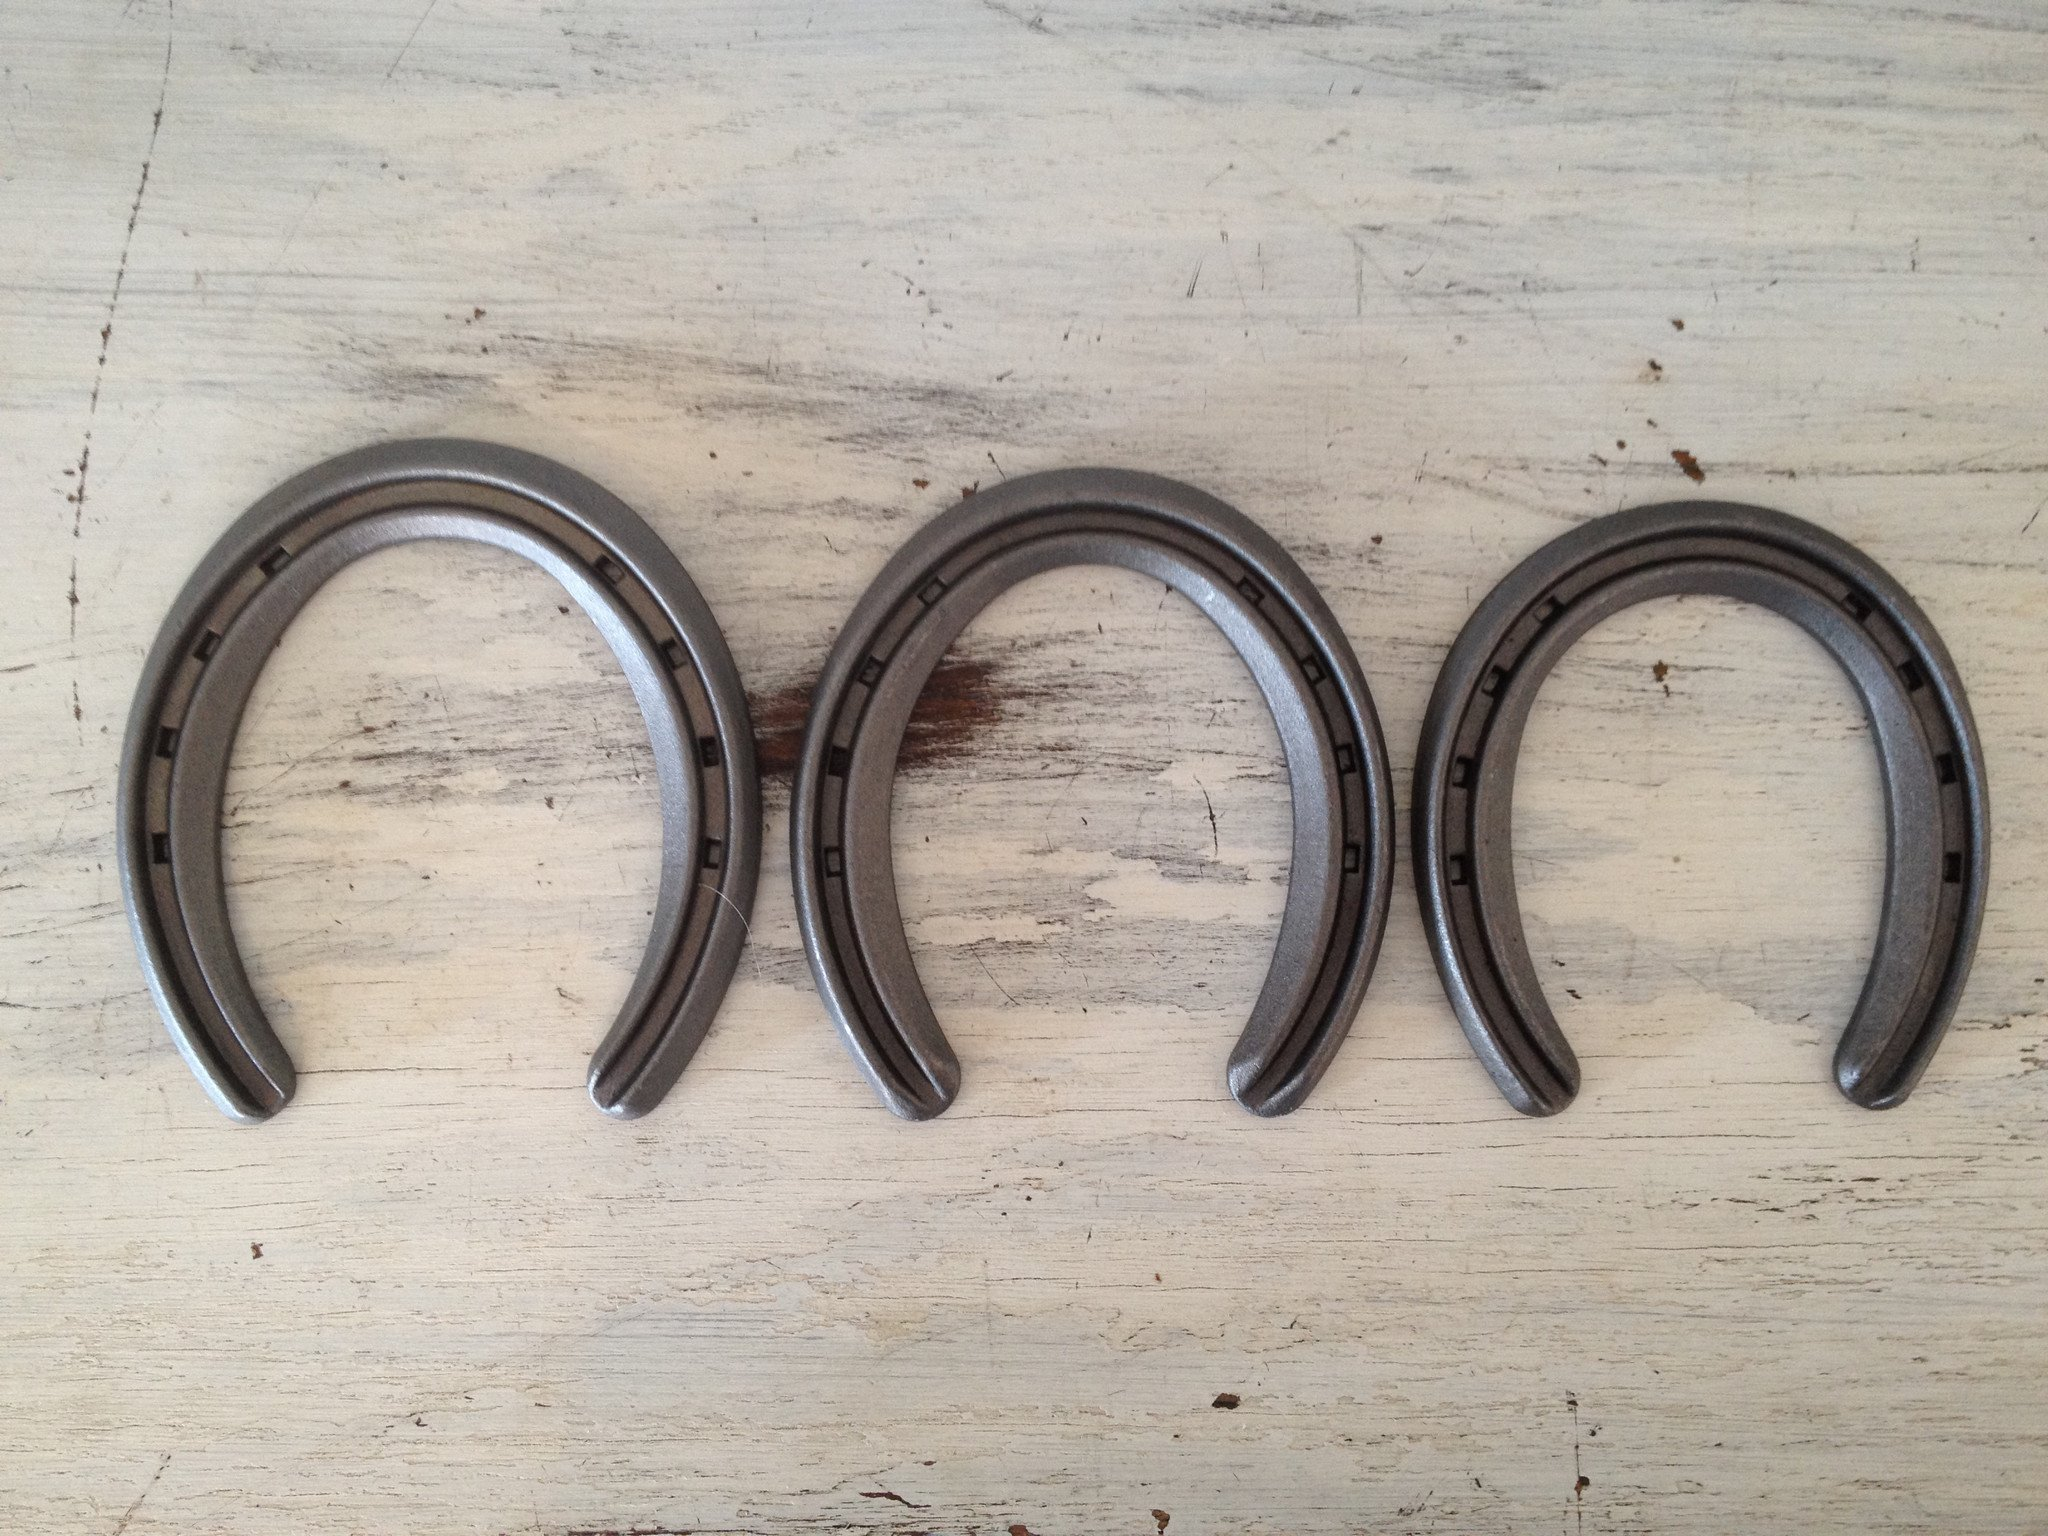 The Heritage Forge - 20 Horseshoes - Lite Rim - Sand Blasted Steel OO by The Heritage Forge